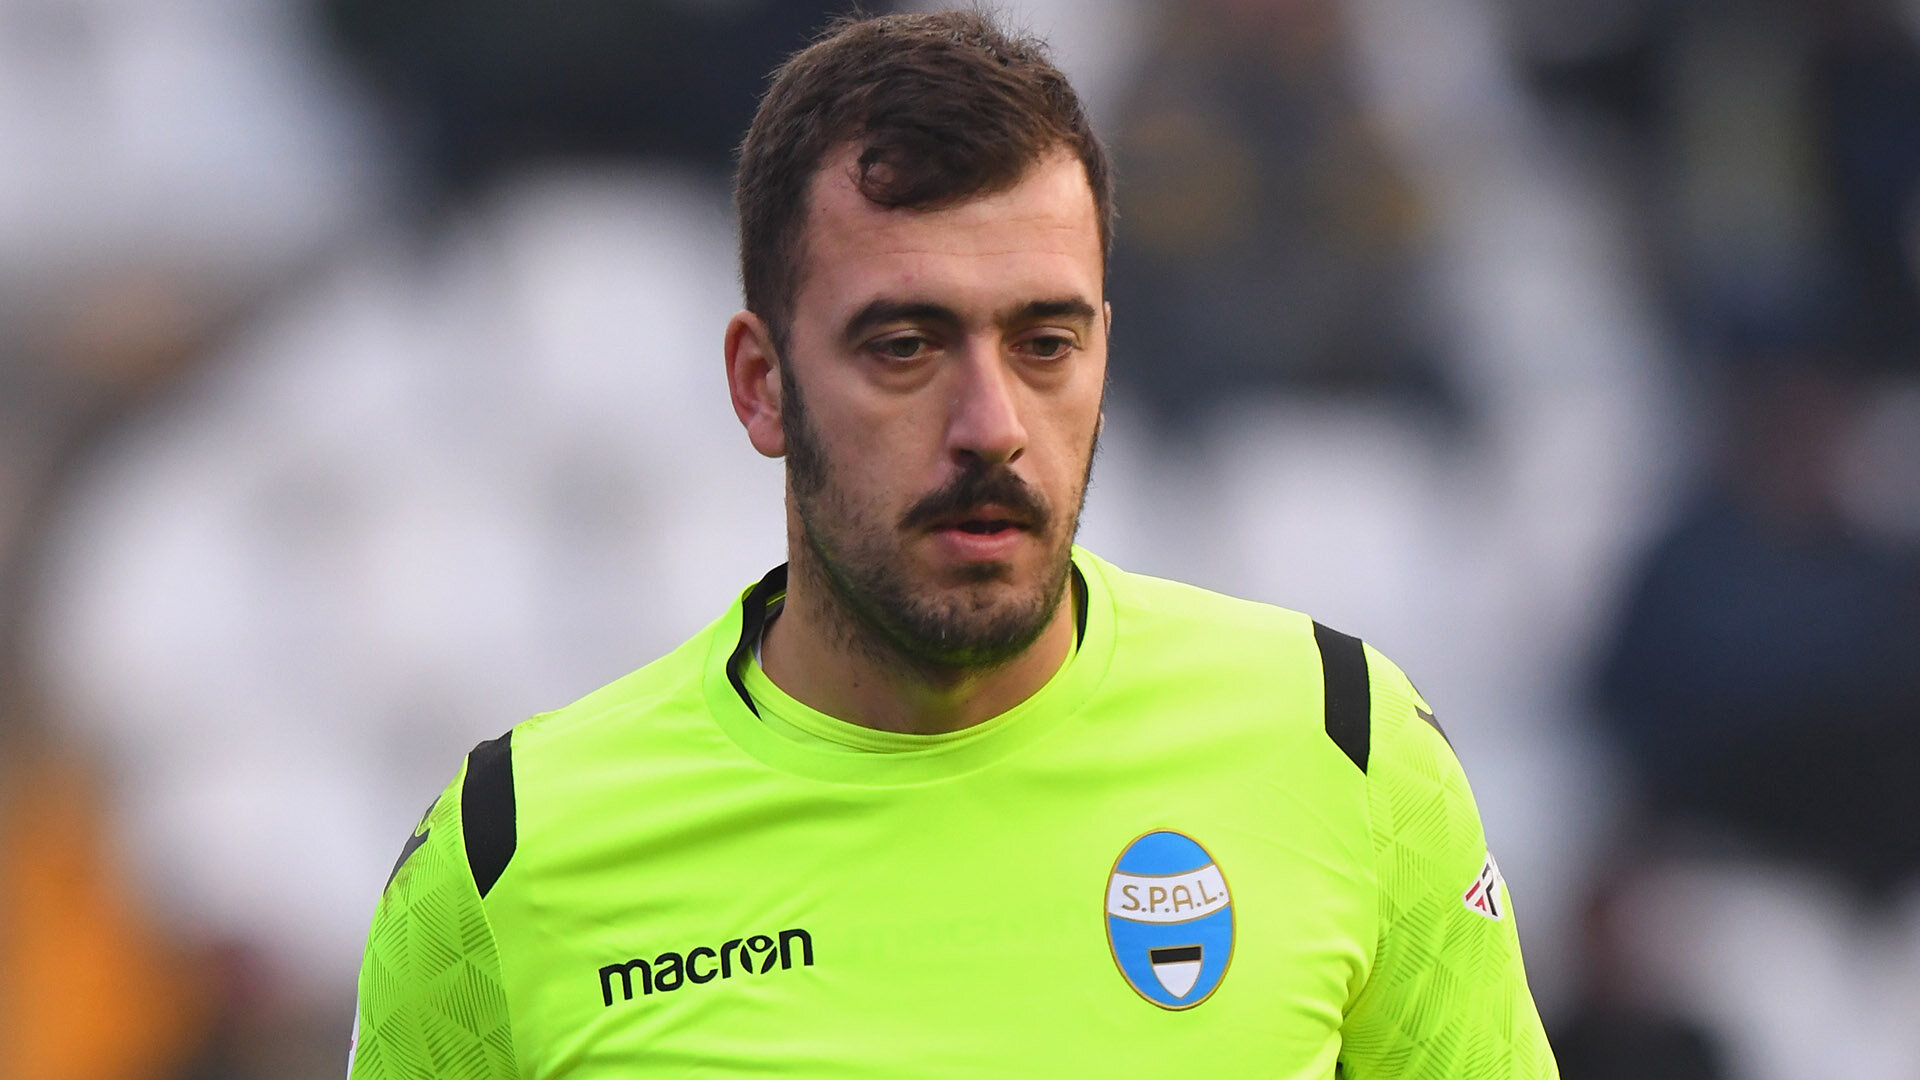 Emiliano Viviano - Source: FedeNerazzurra